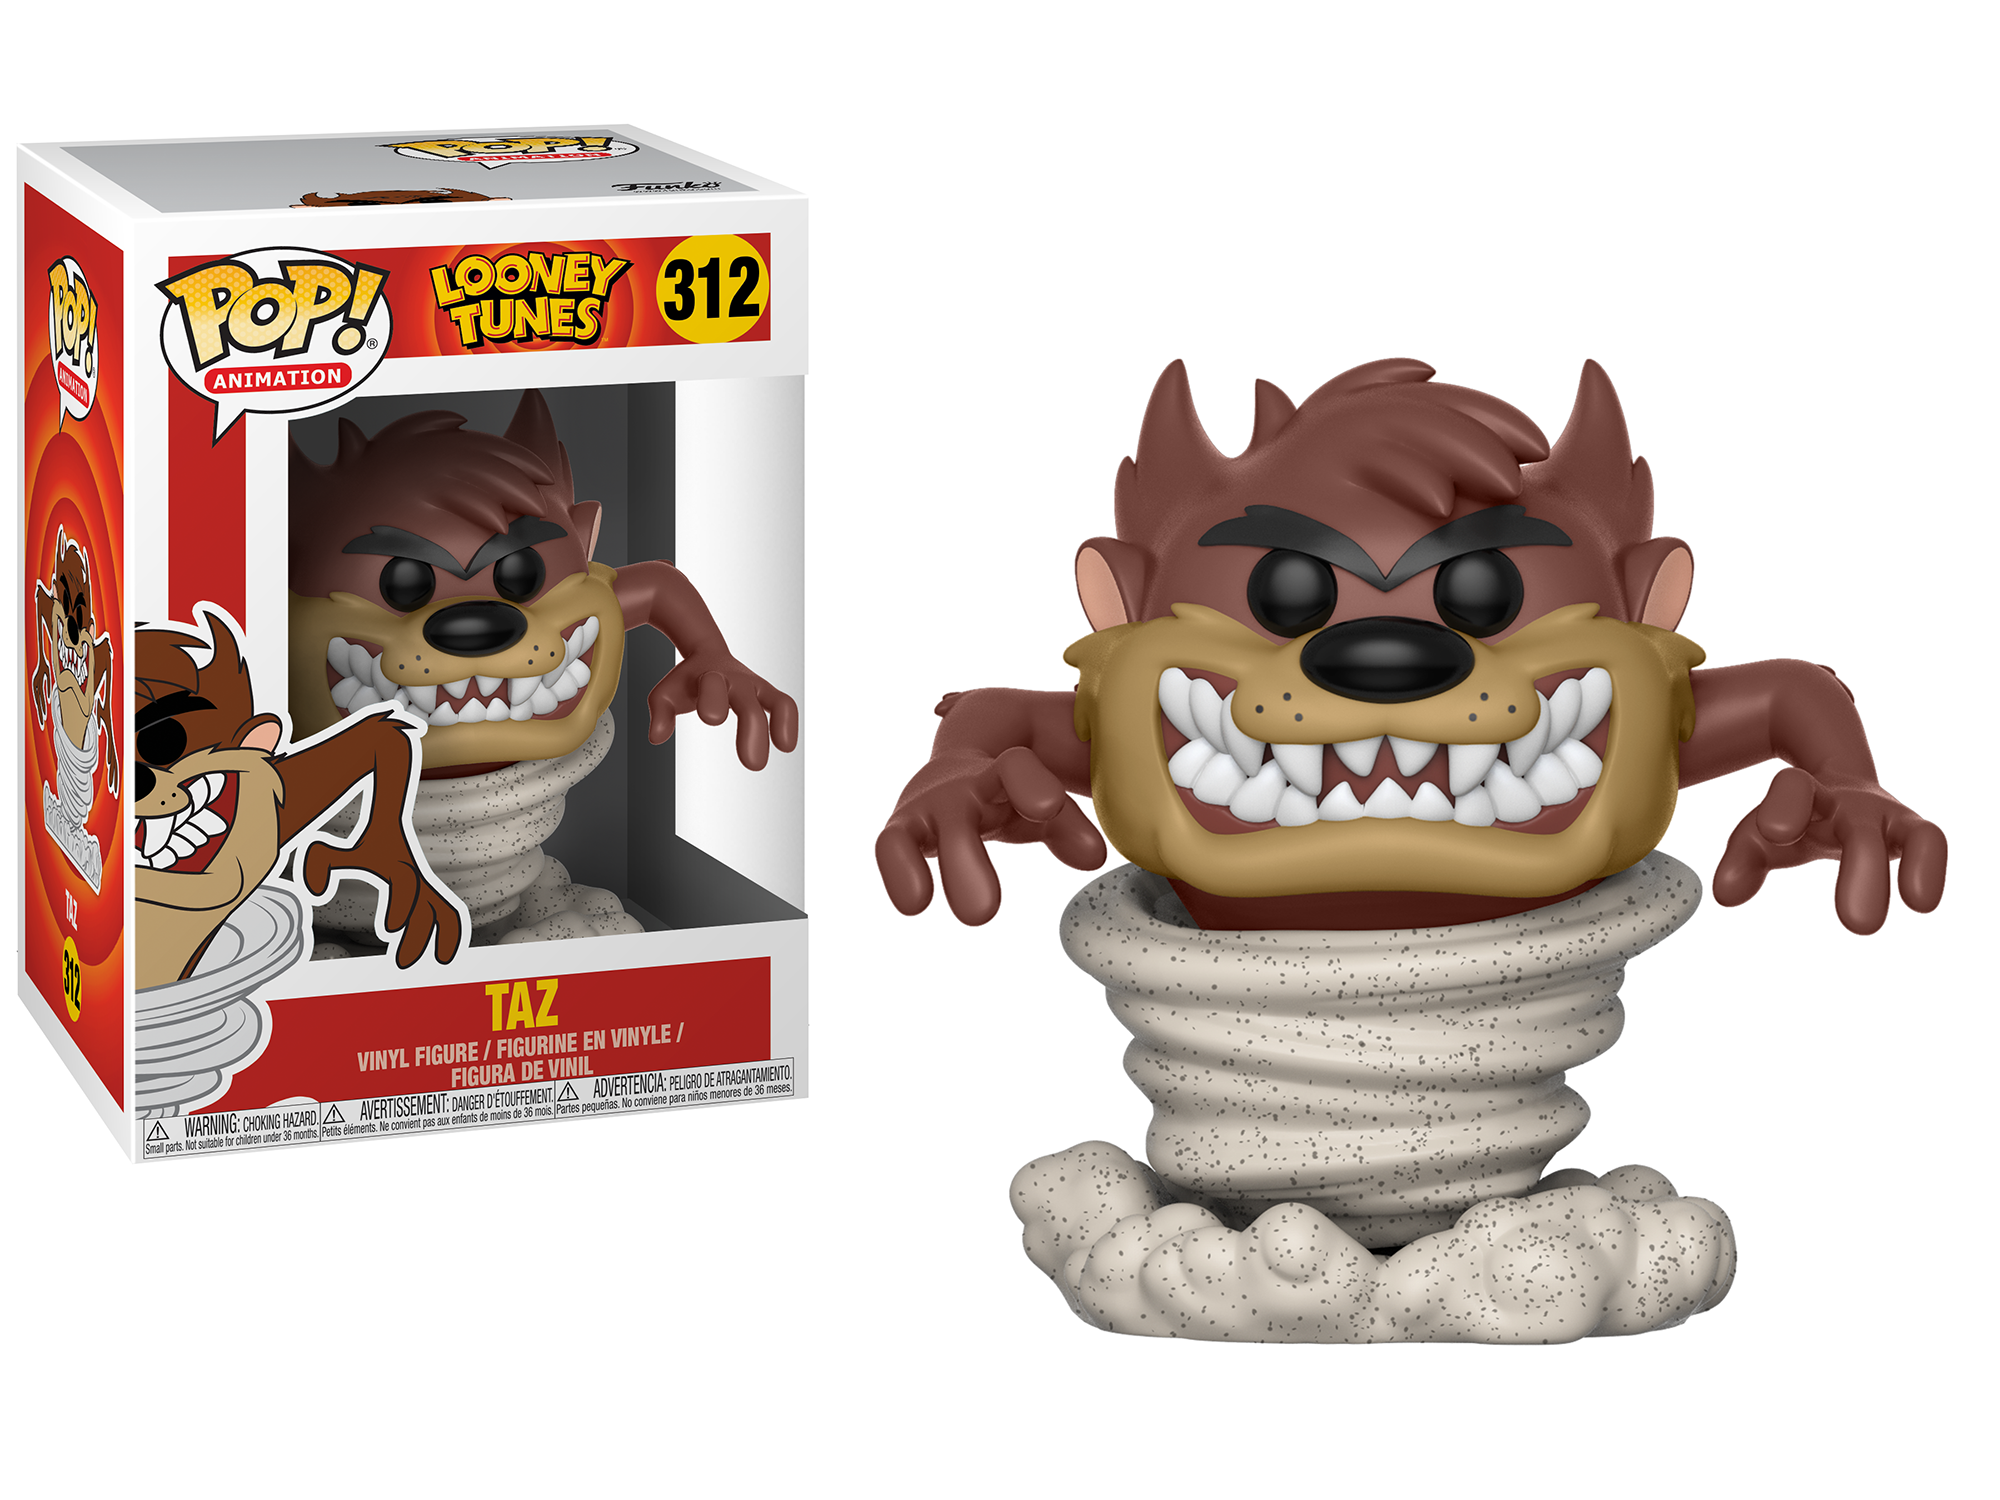 POP! Looney Tunes - Taz (312) Vinyl Figure